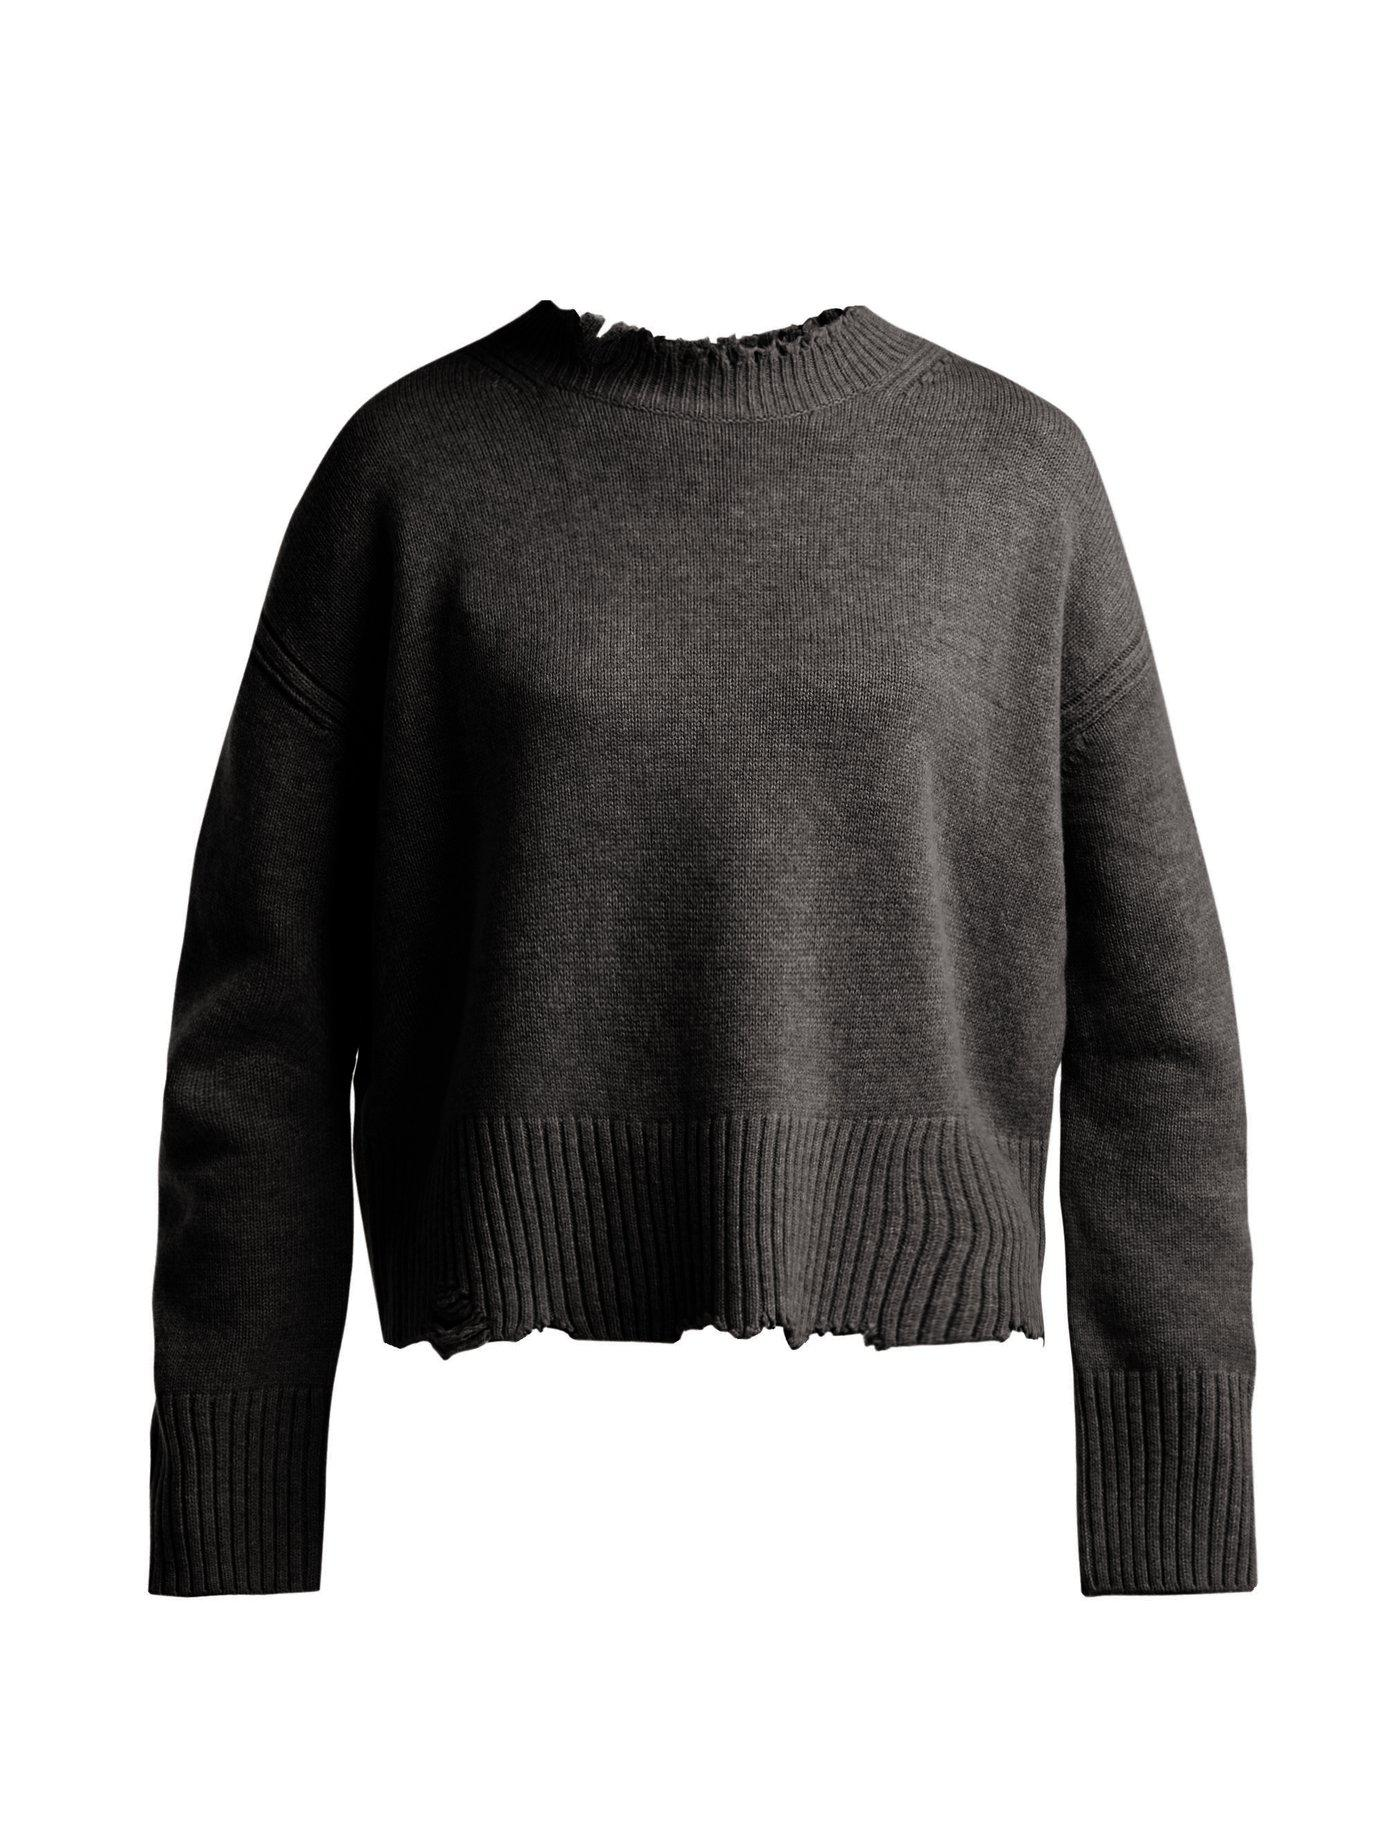 b6c95c52428db Lyst - Helmut Lang Distressed Crew Neck Sweater in Gray